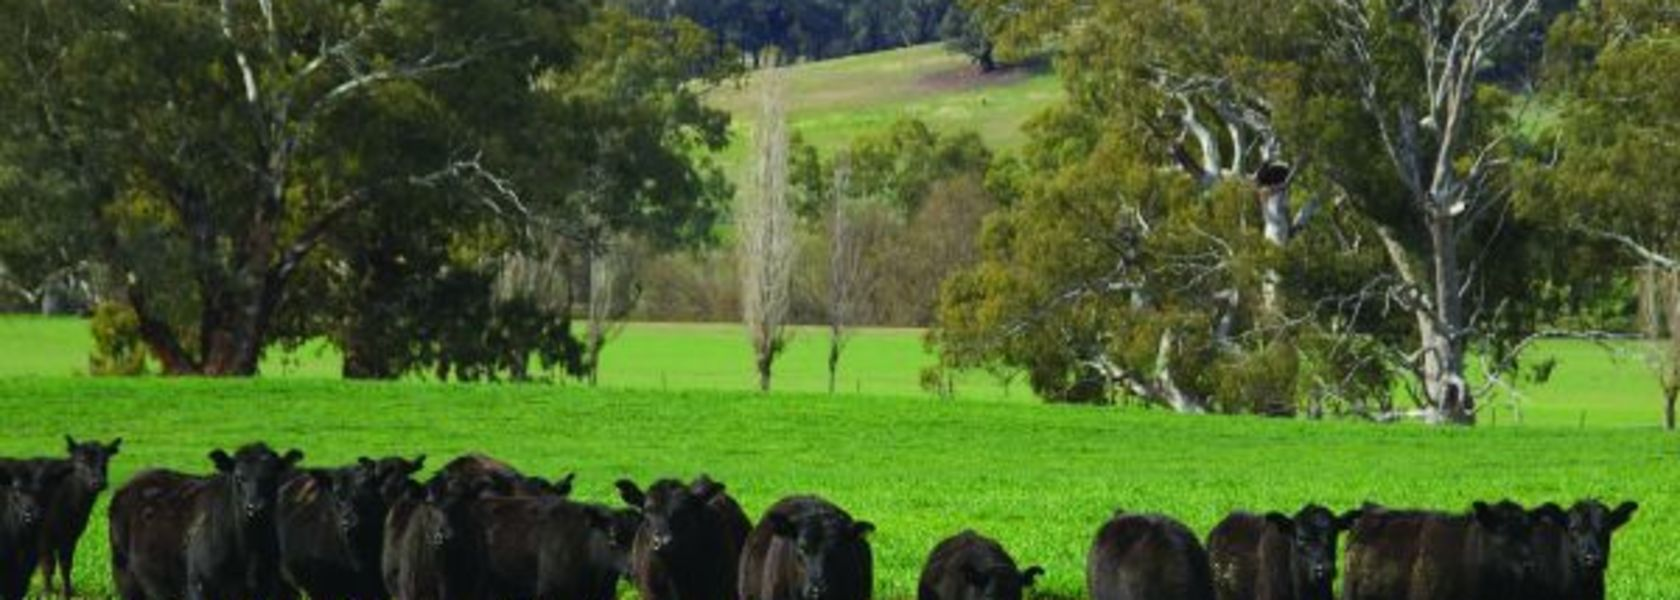 Producers urged to stay focused on biosecurity